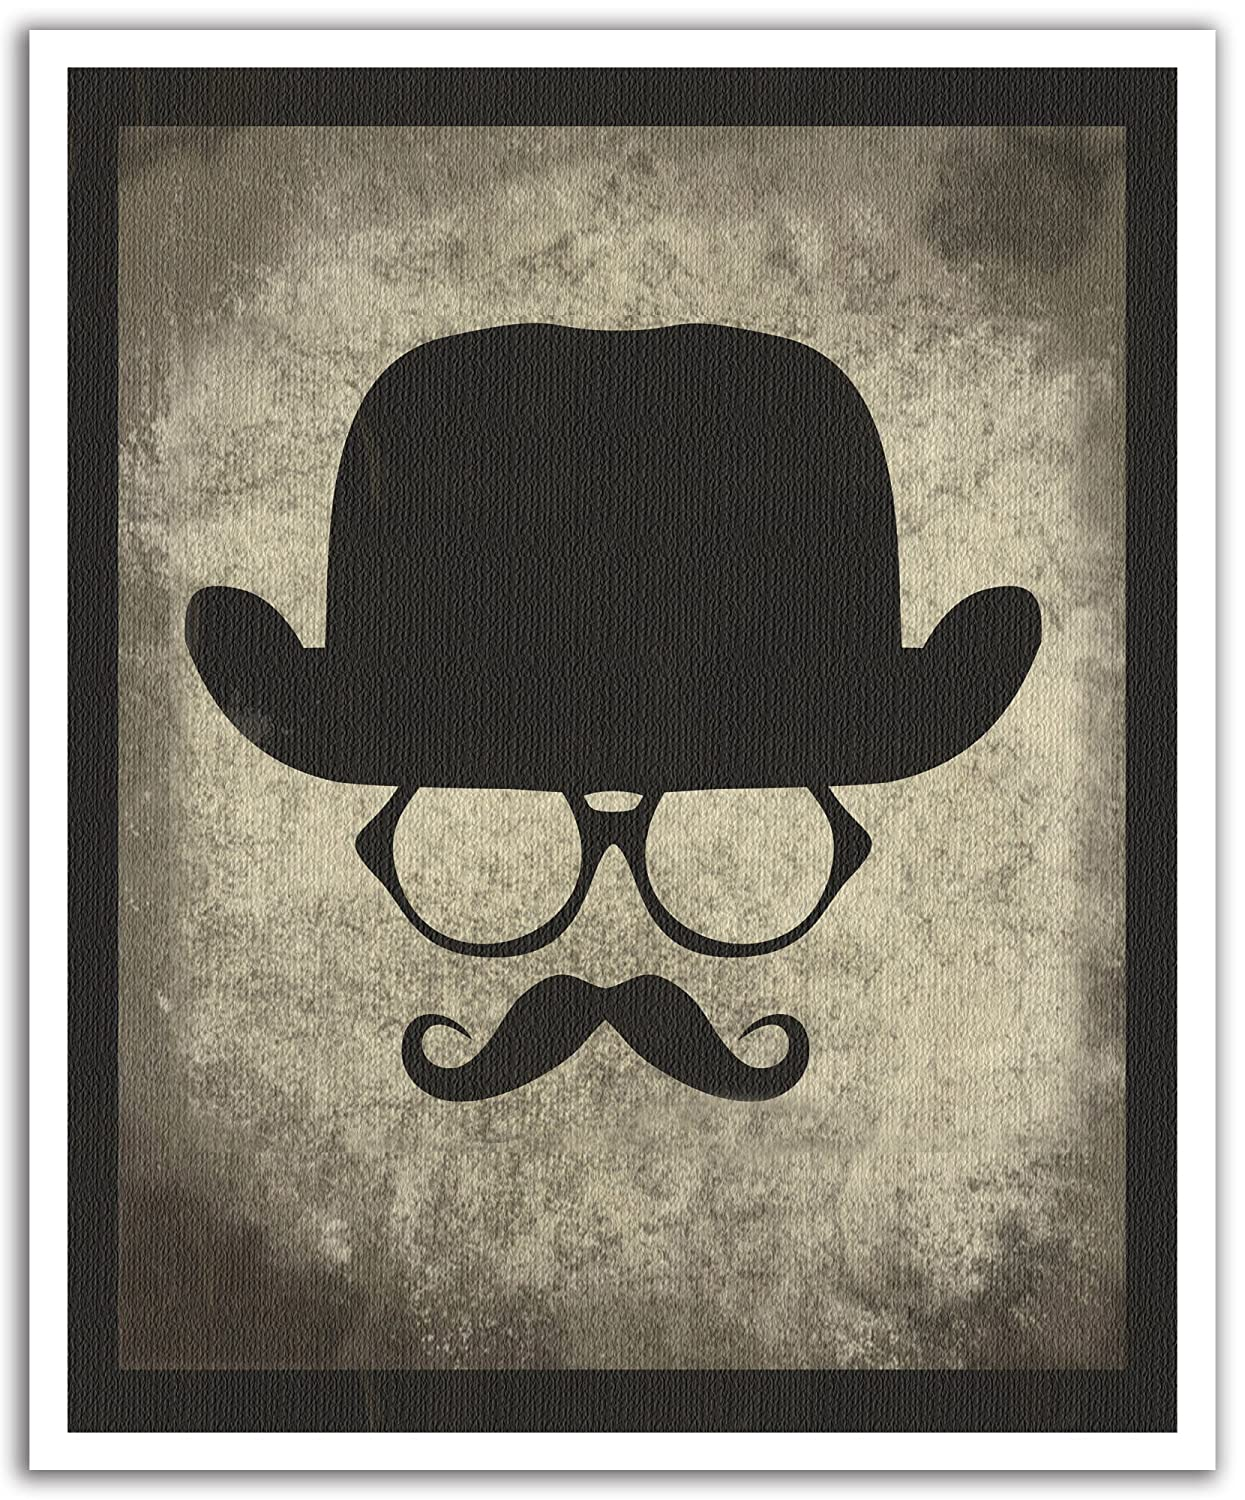 JP London POS2321 uStrip Peel and Stick Removable Wall Decal Sticker Mural Magnum PI Moustache Stache Hipster 19.75-Inch by 24-Inch